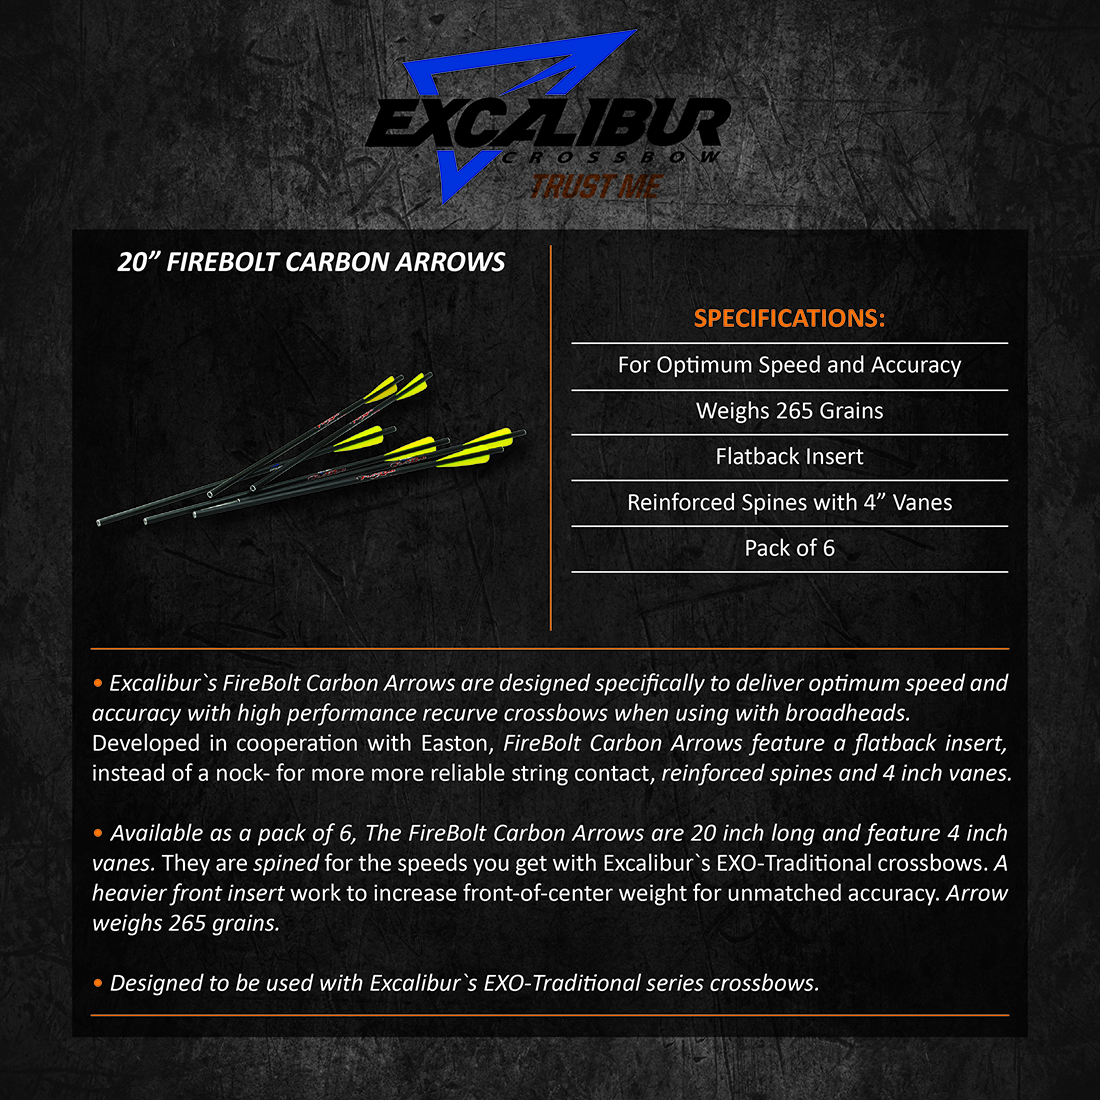 Excalibur_FireBolt_Carbon_Arrows_6pk20in_Product_Description